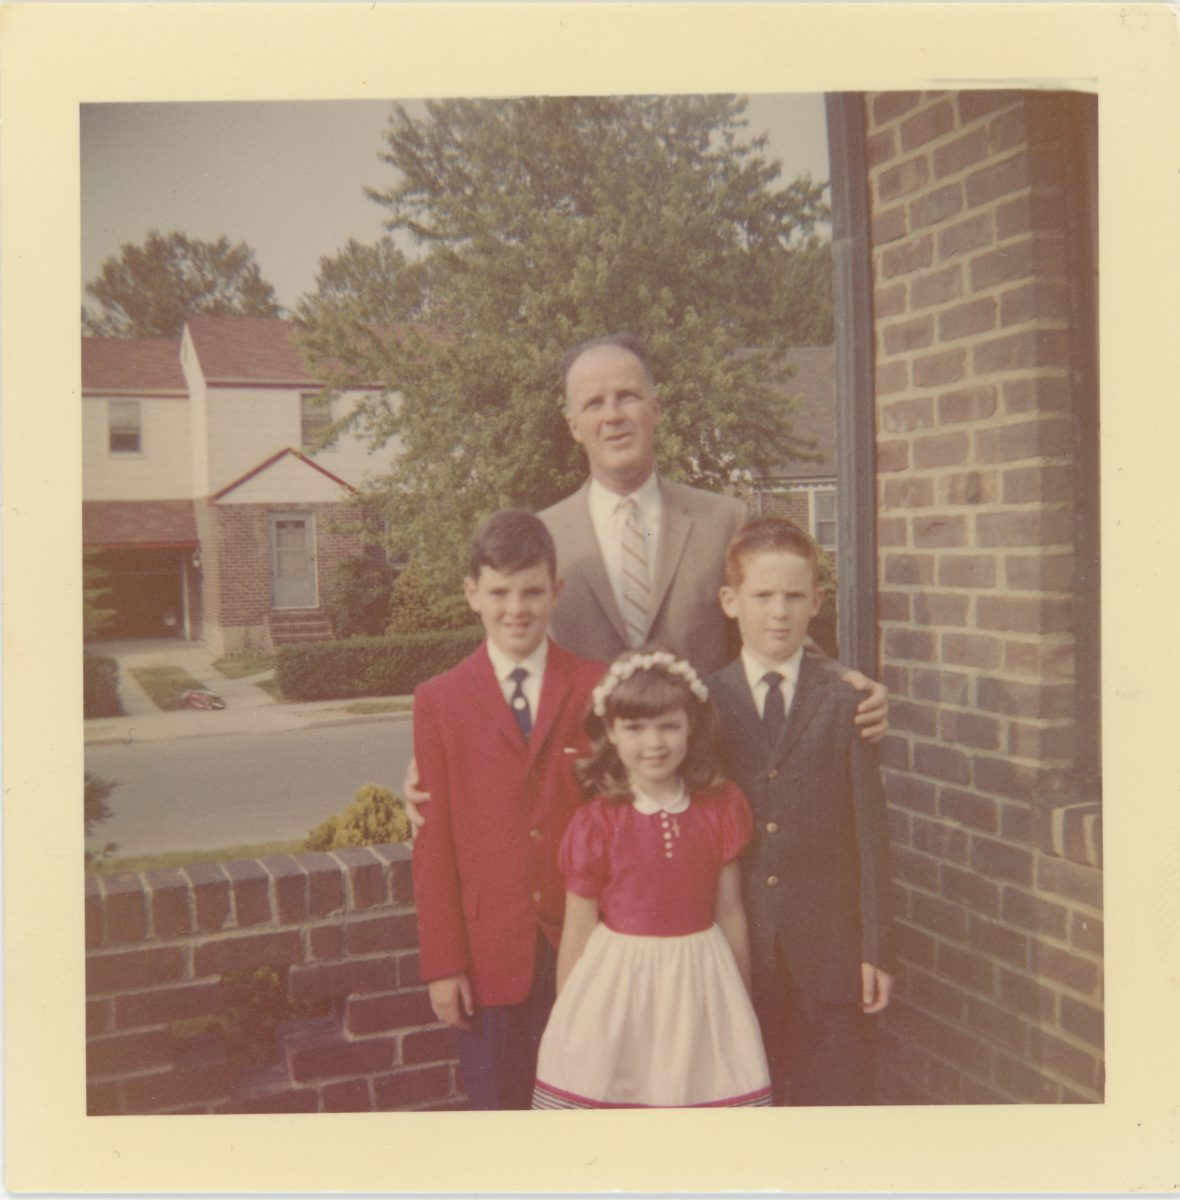 McDermott Family album / Washington DC :: Alice's father William with Alice and her brothers